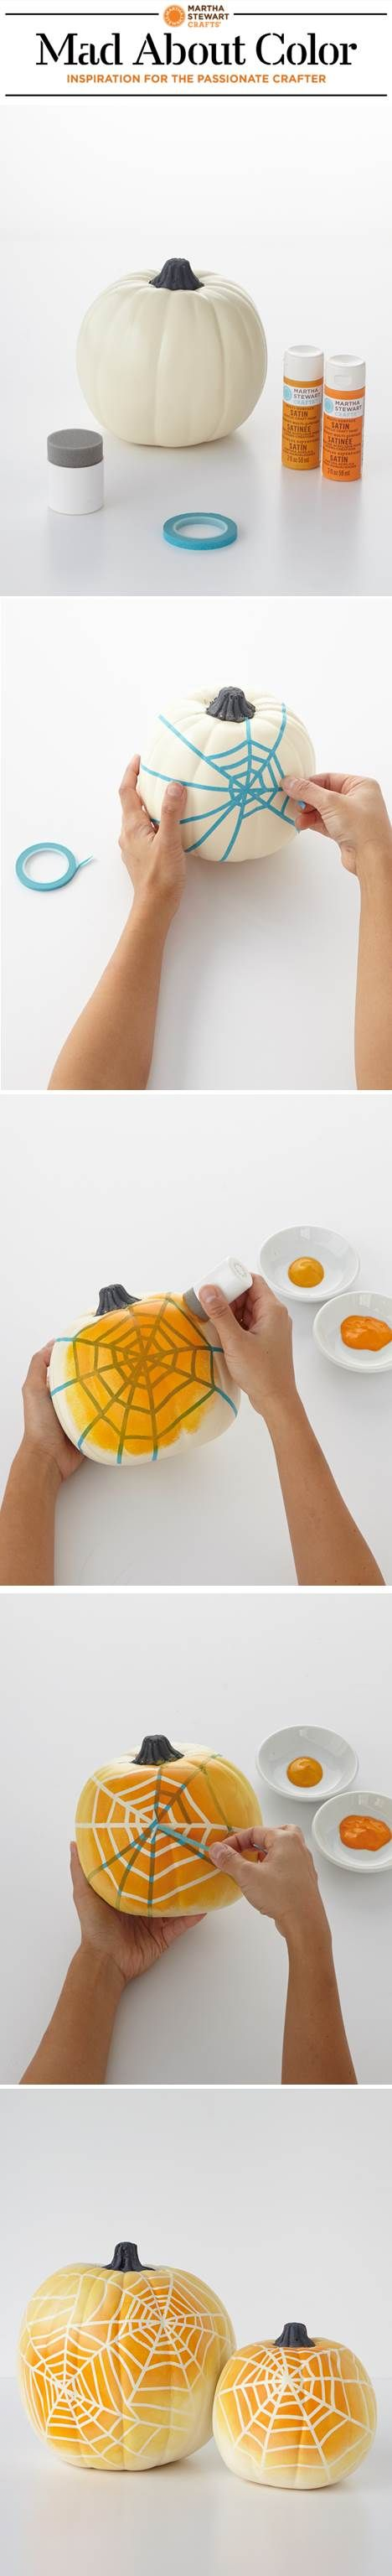 #DIY ombre spiderweb pumpkins with paints and tools from #marthastewartcrafts